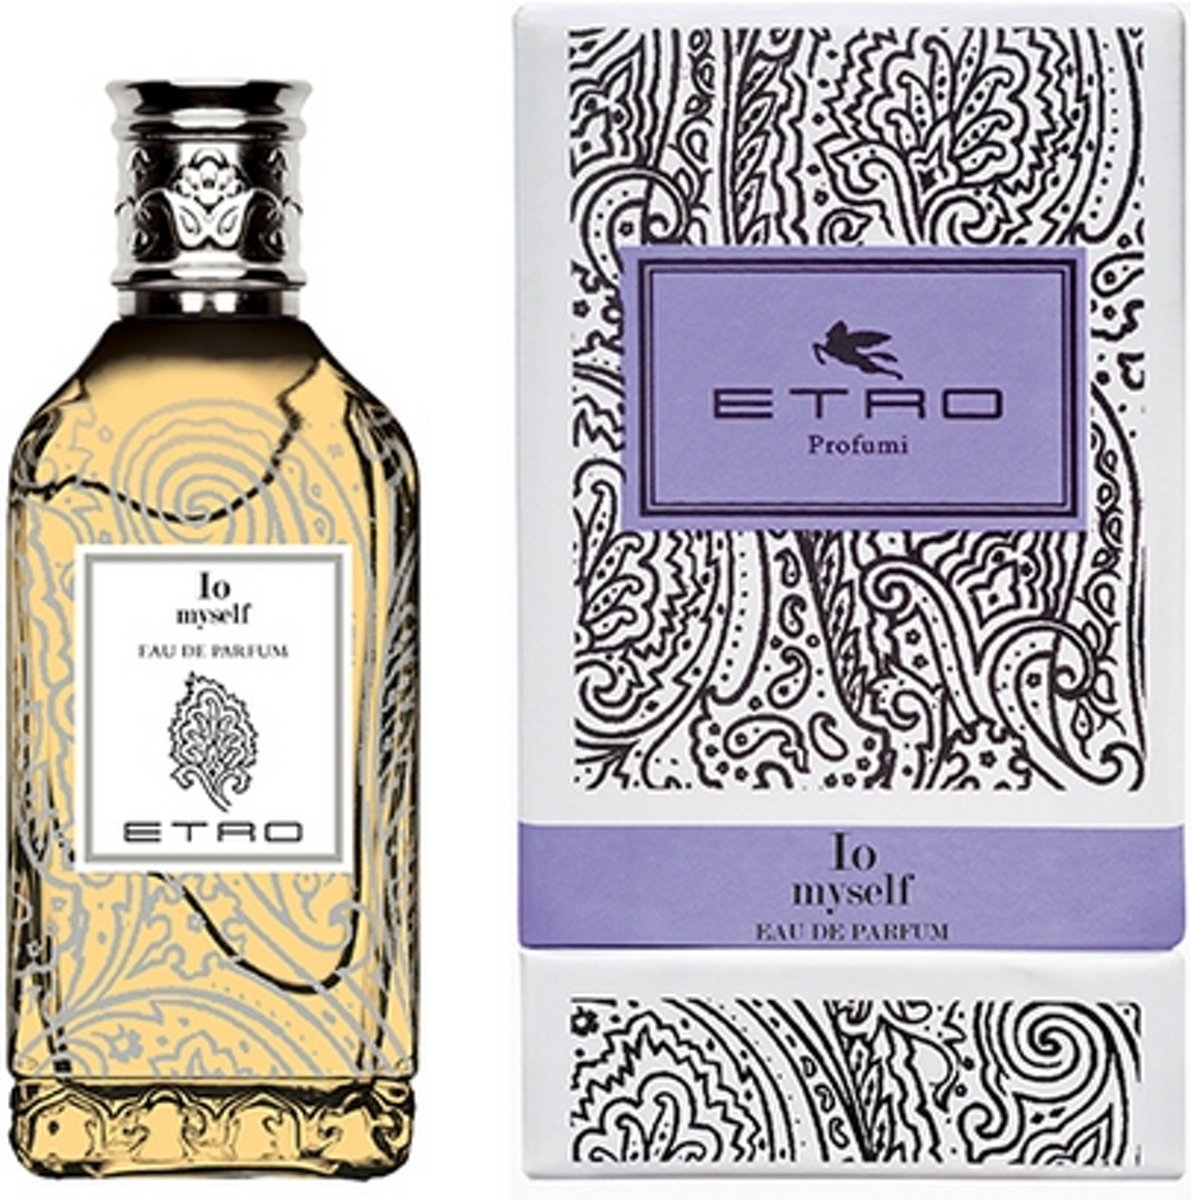 Etro Io myself 100ml eau de parfum